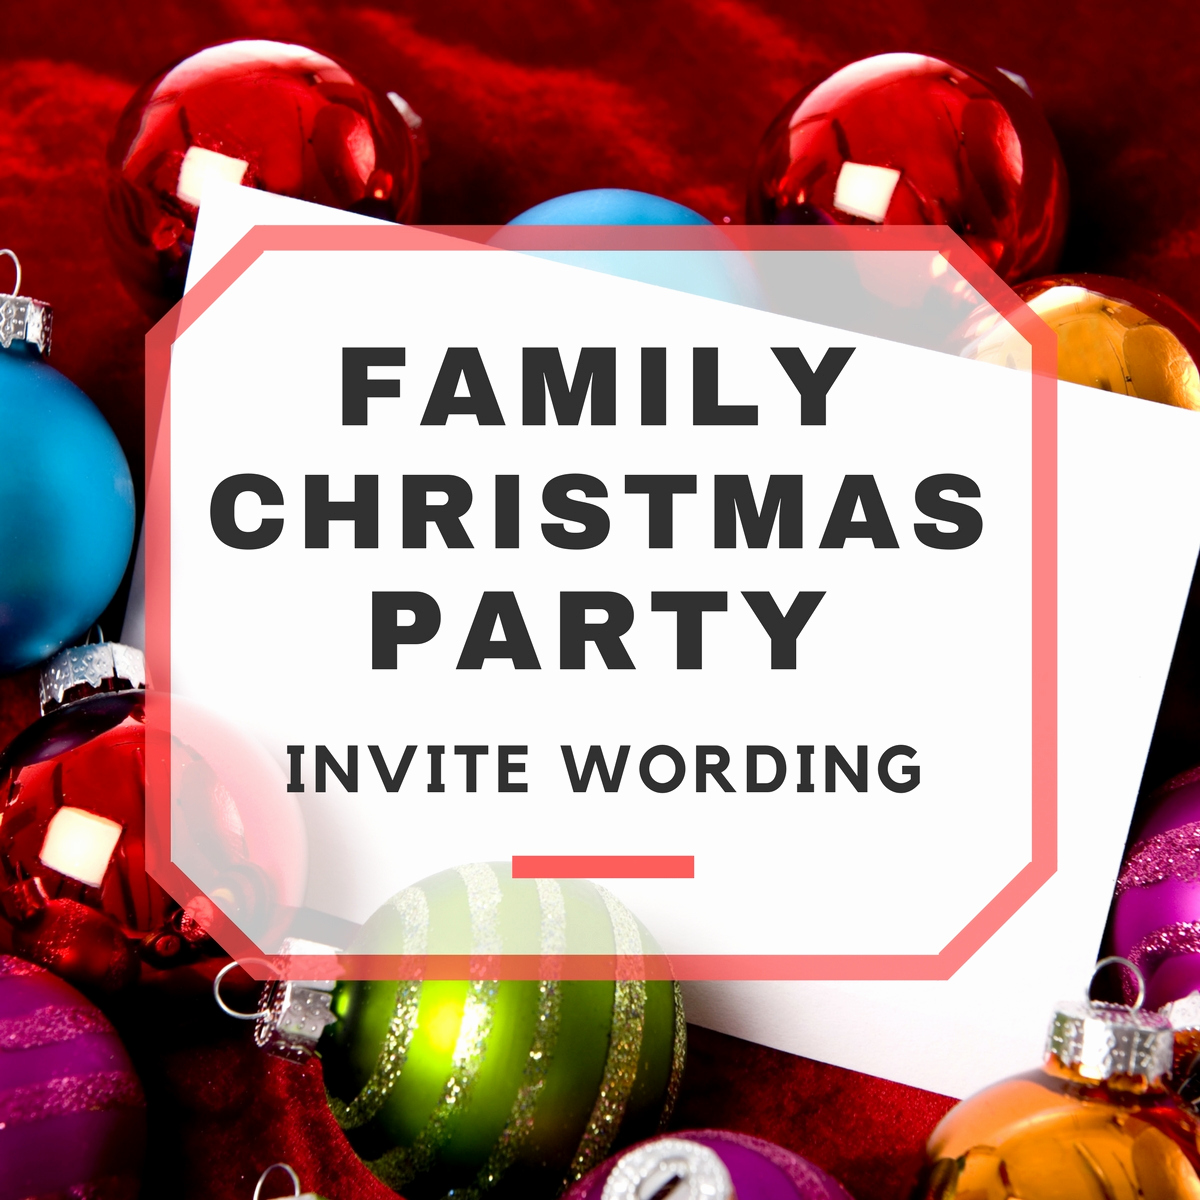 Invitation Quotes for Party Awesome Family Christmas Party Invitation Wording